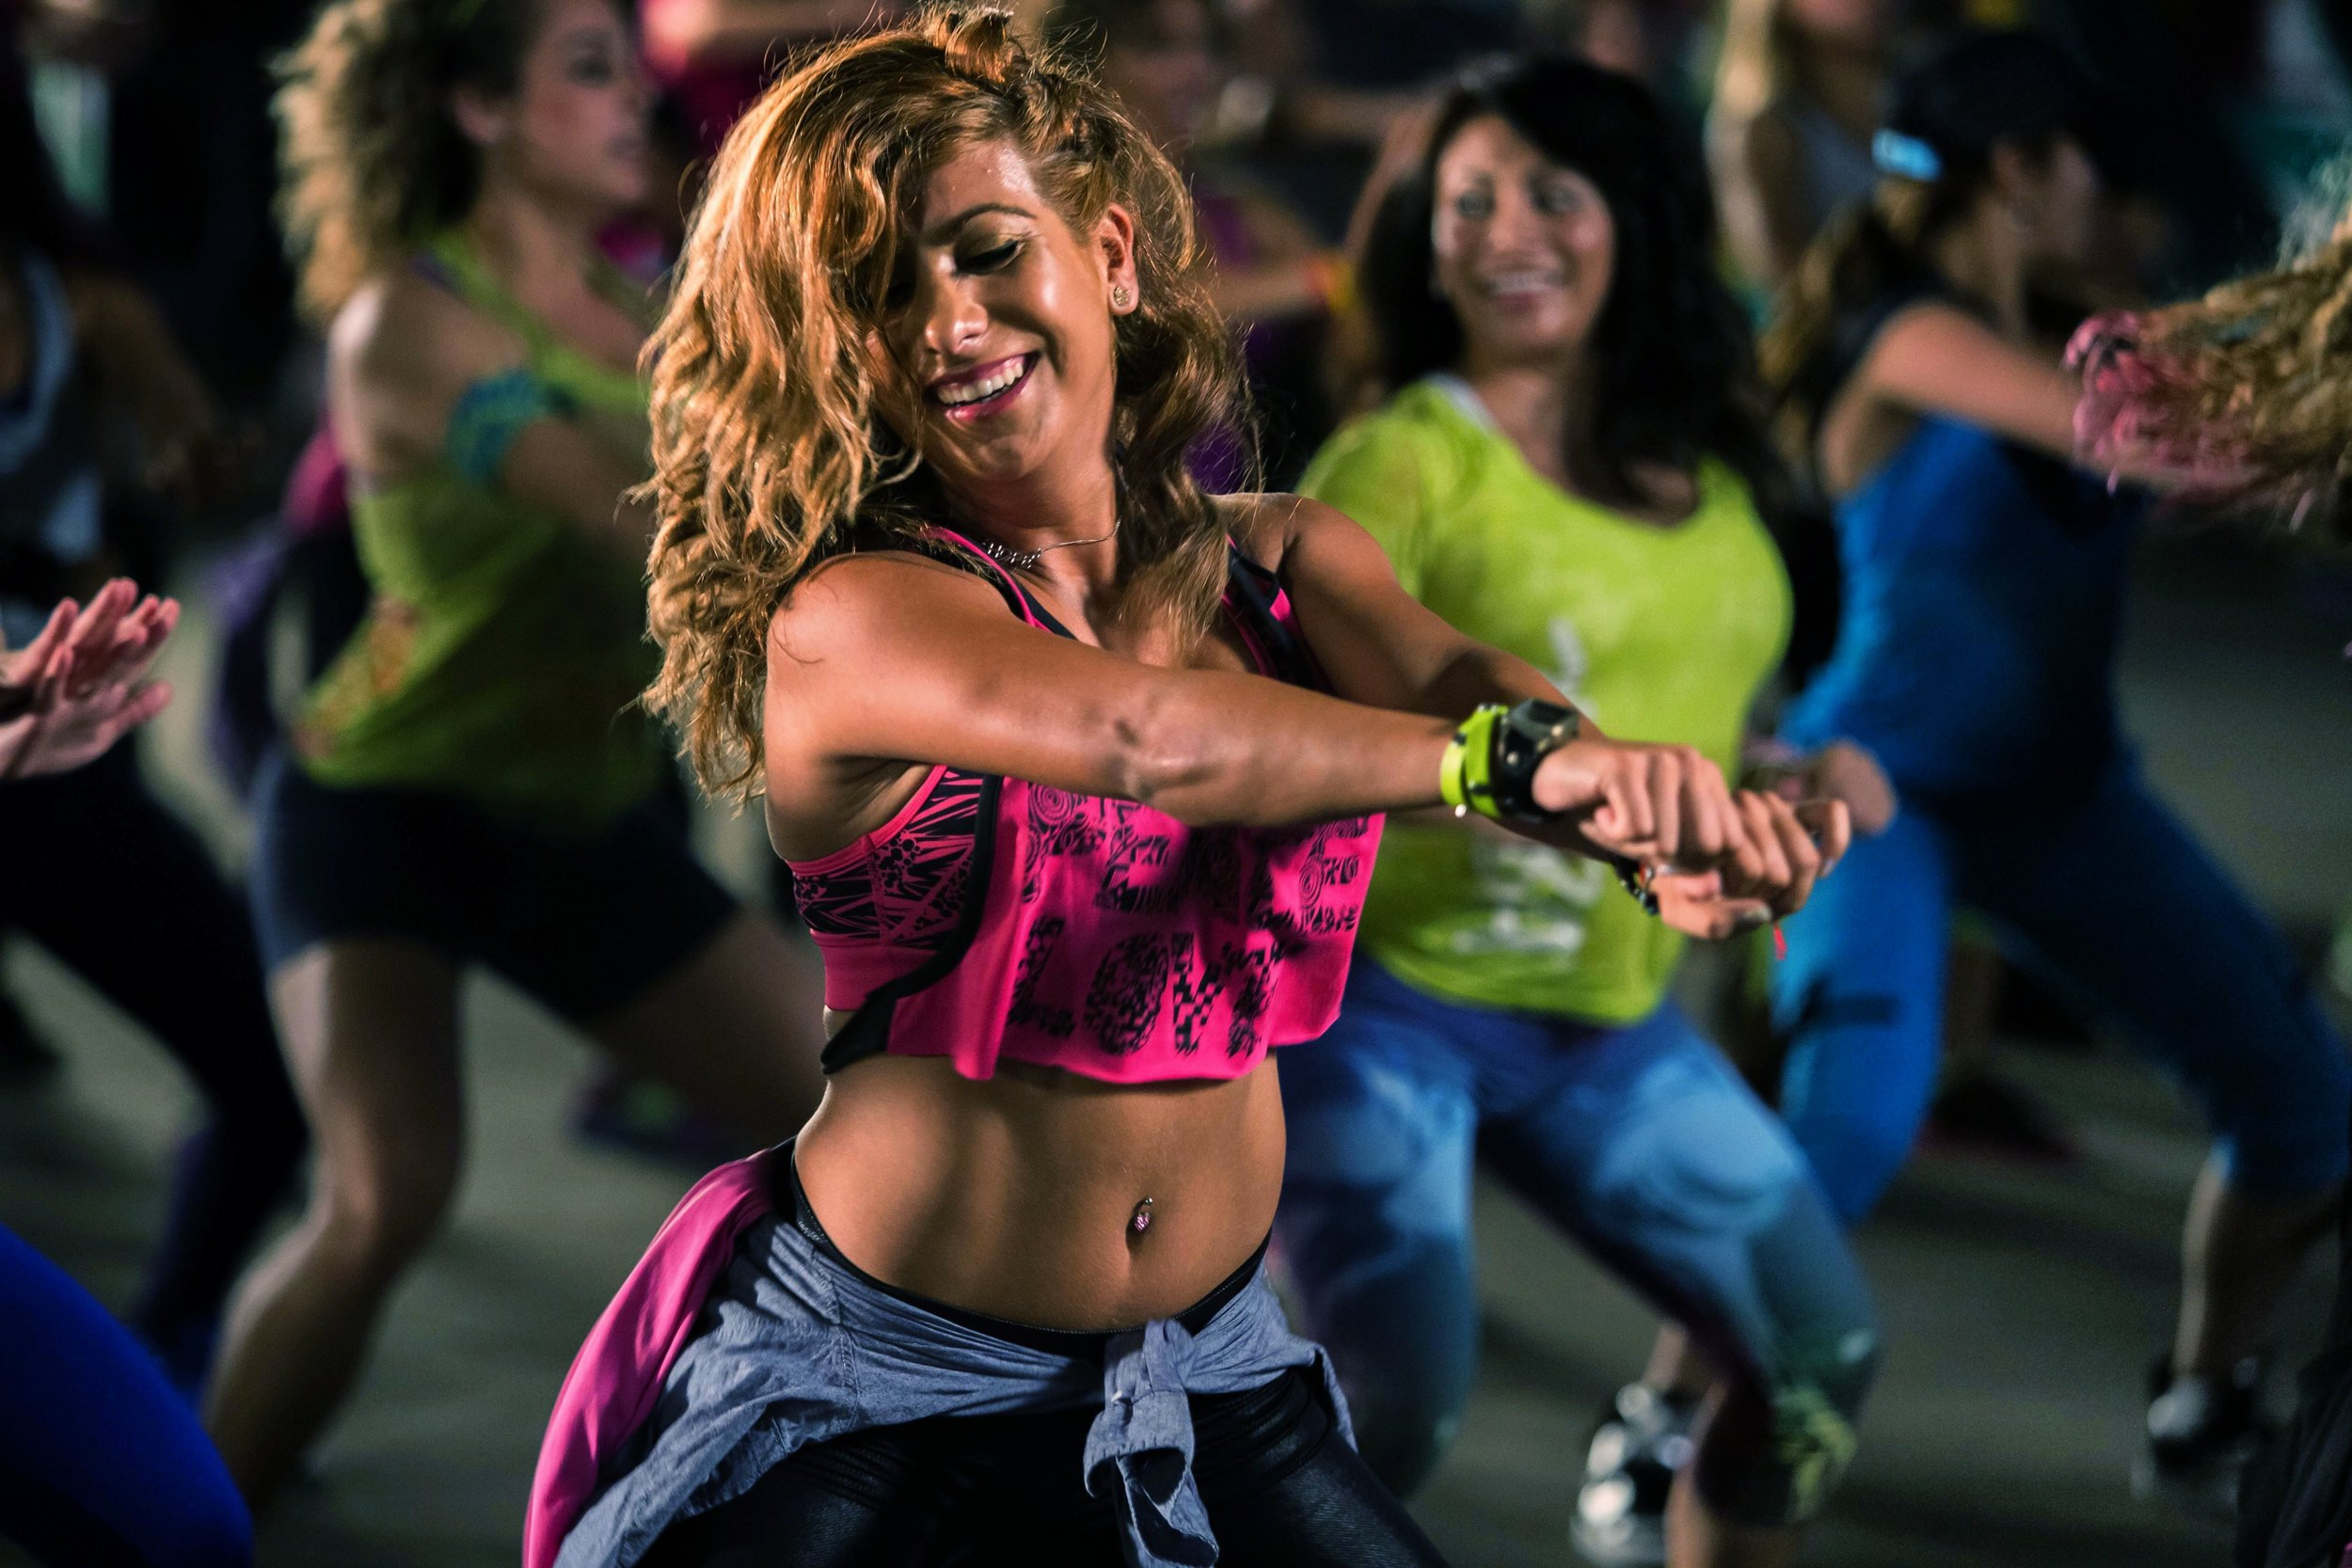 Zumba_dance_classes_in_toronto.JPG